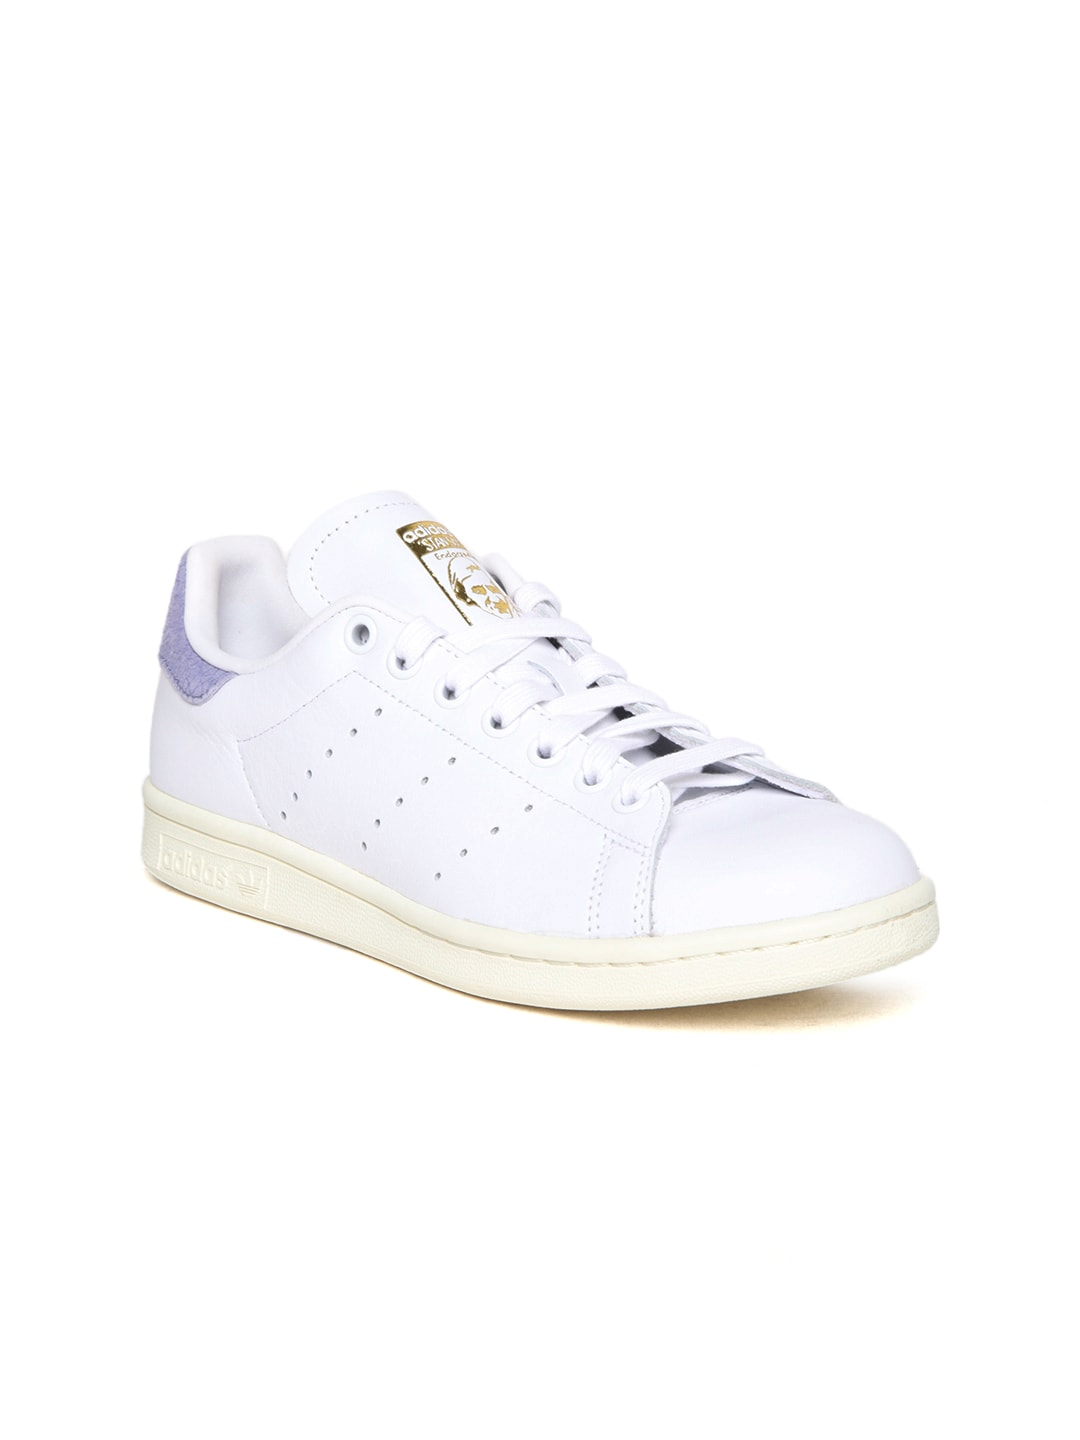 1f86d051a54434 Adidas Originals Everyn White Sneakers for women - Get stylish shoes ...